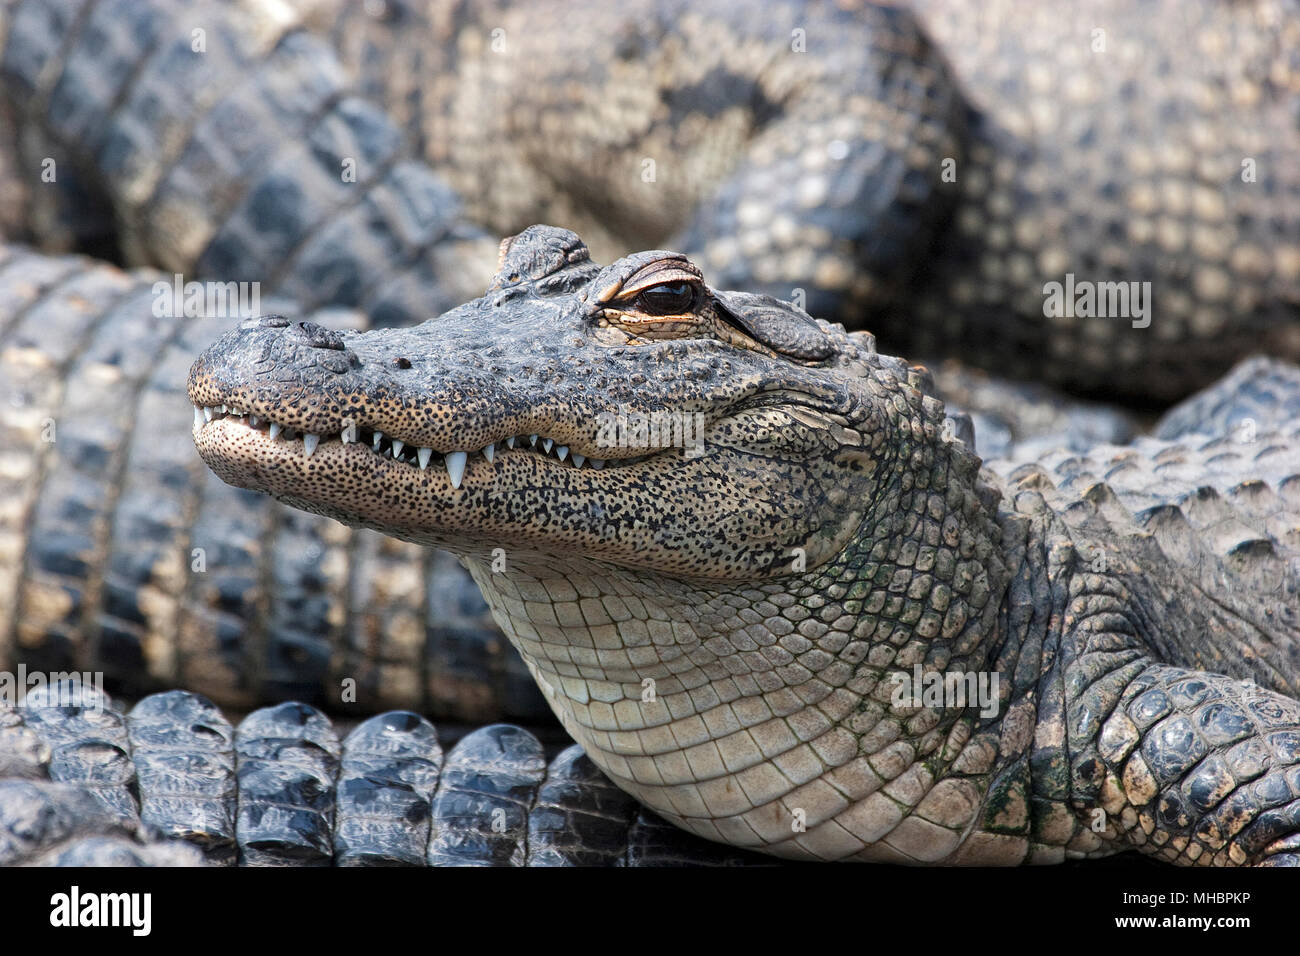 American alligators (Alligator mississippiensis), young animal, Everglades, Florida, USA - Stock Image